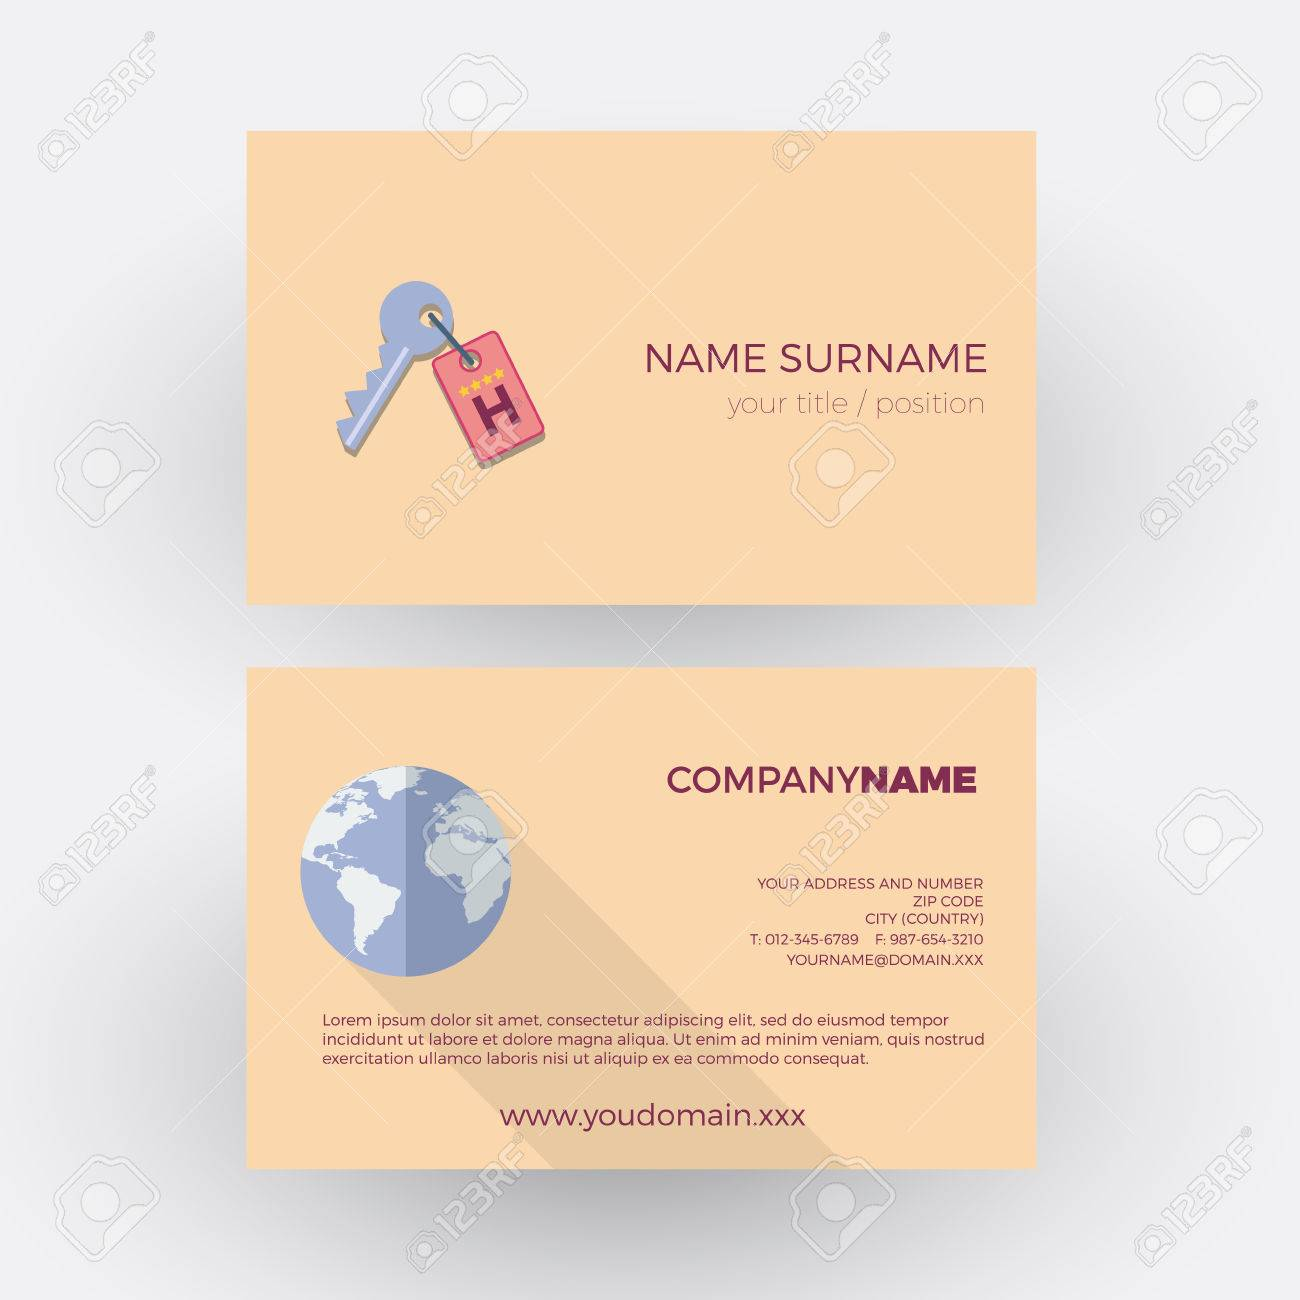 Travel agent business card images free business cards key of hotel travel agency vector professional business card key of hotel travel agency vector professional magicingreecefo Image collections